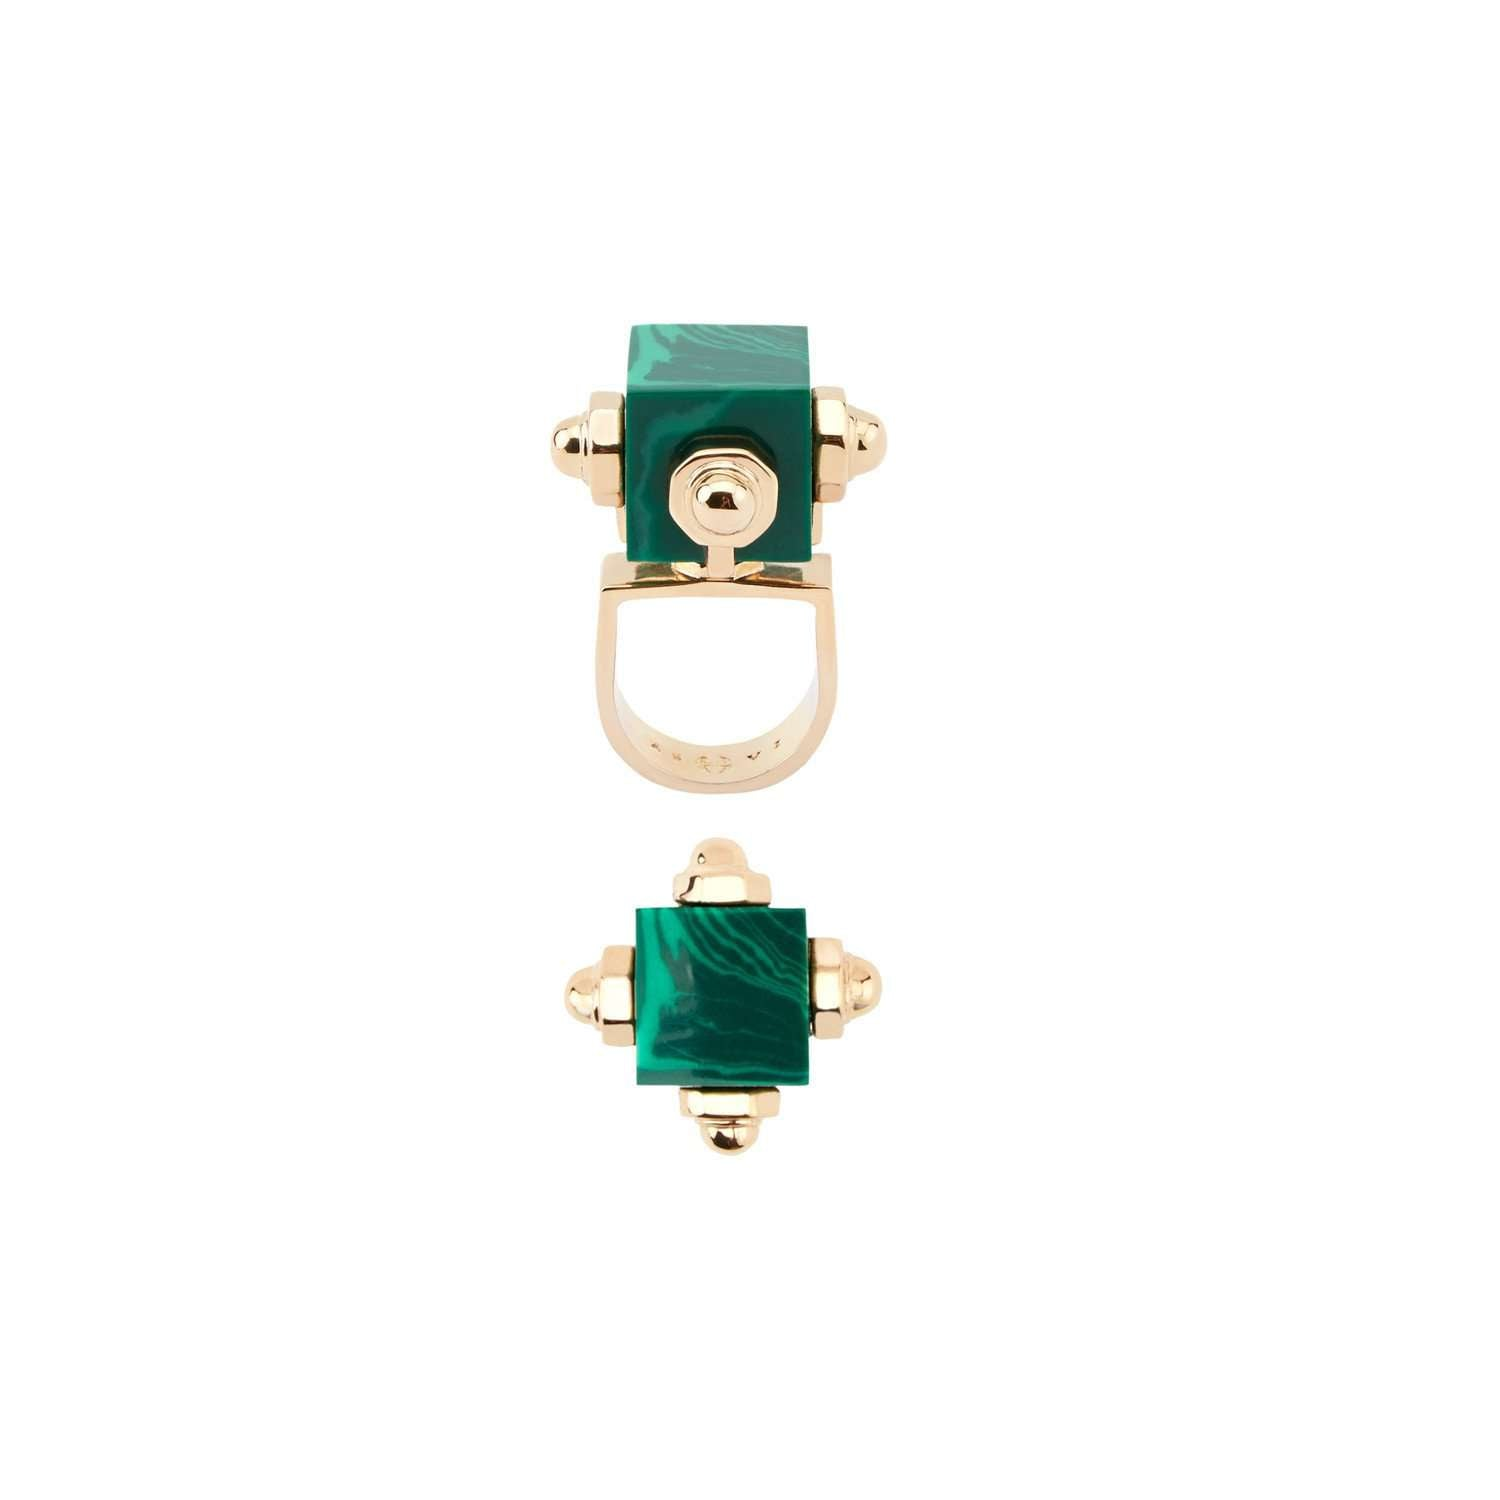 Geometric Malachite Resin Ring on Yellow Gold Plated Metal